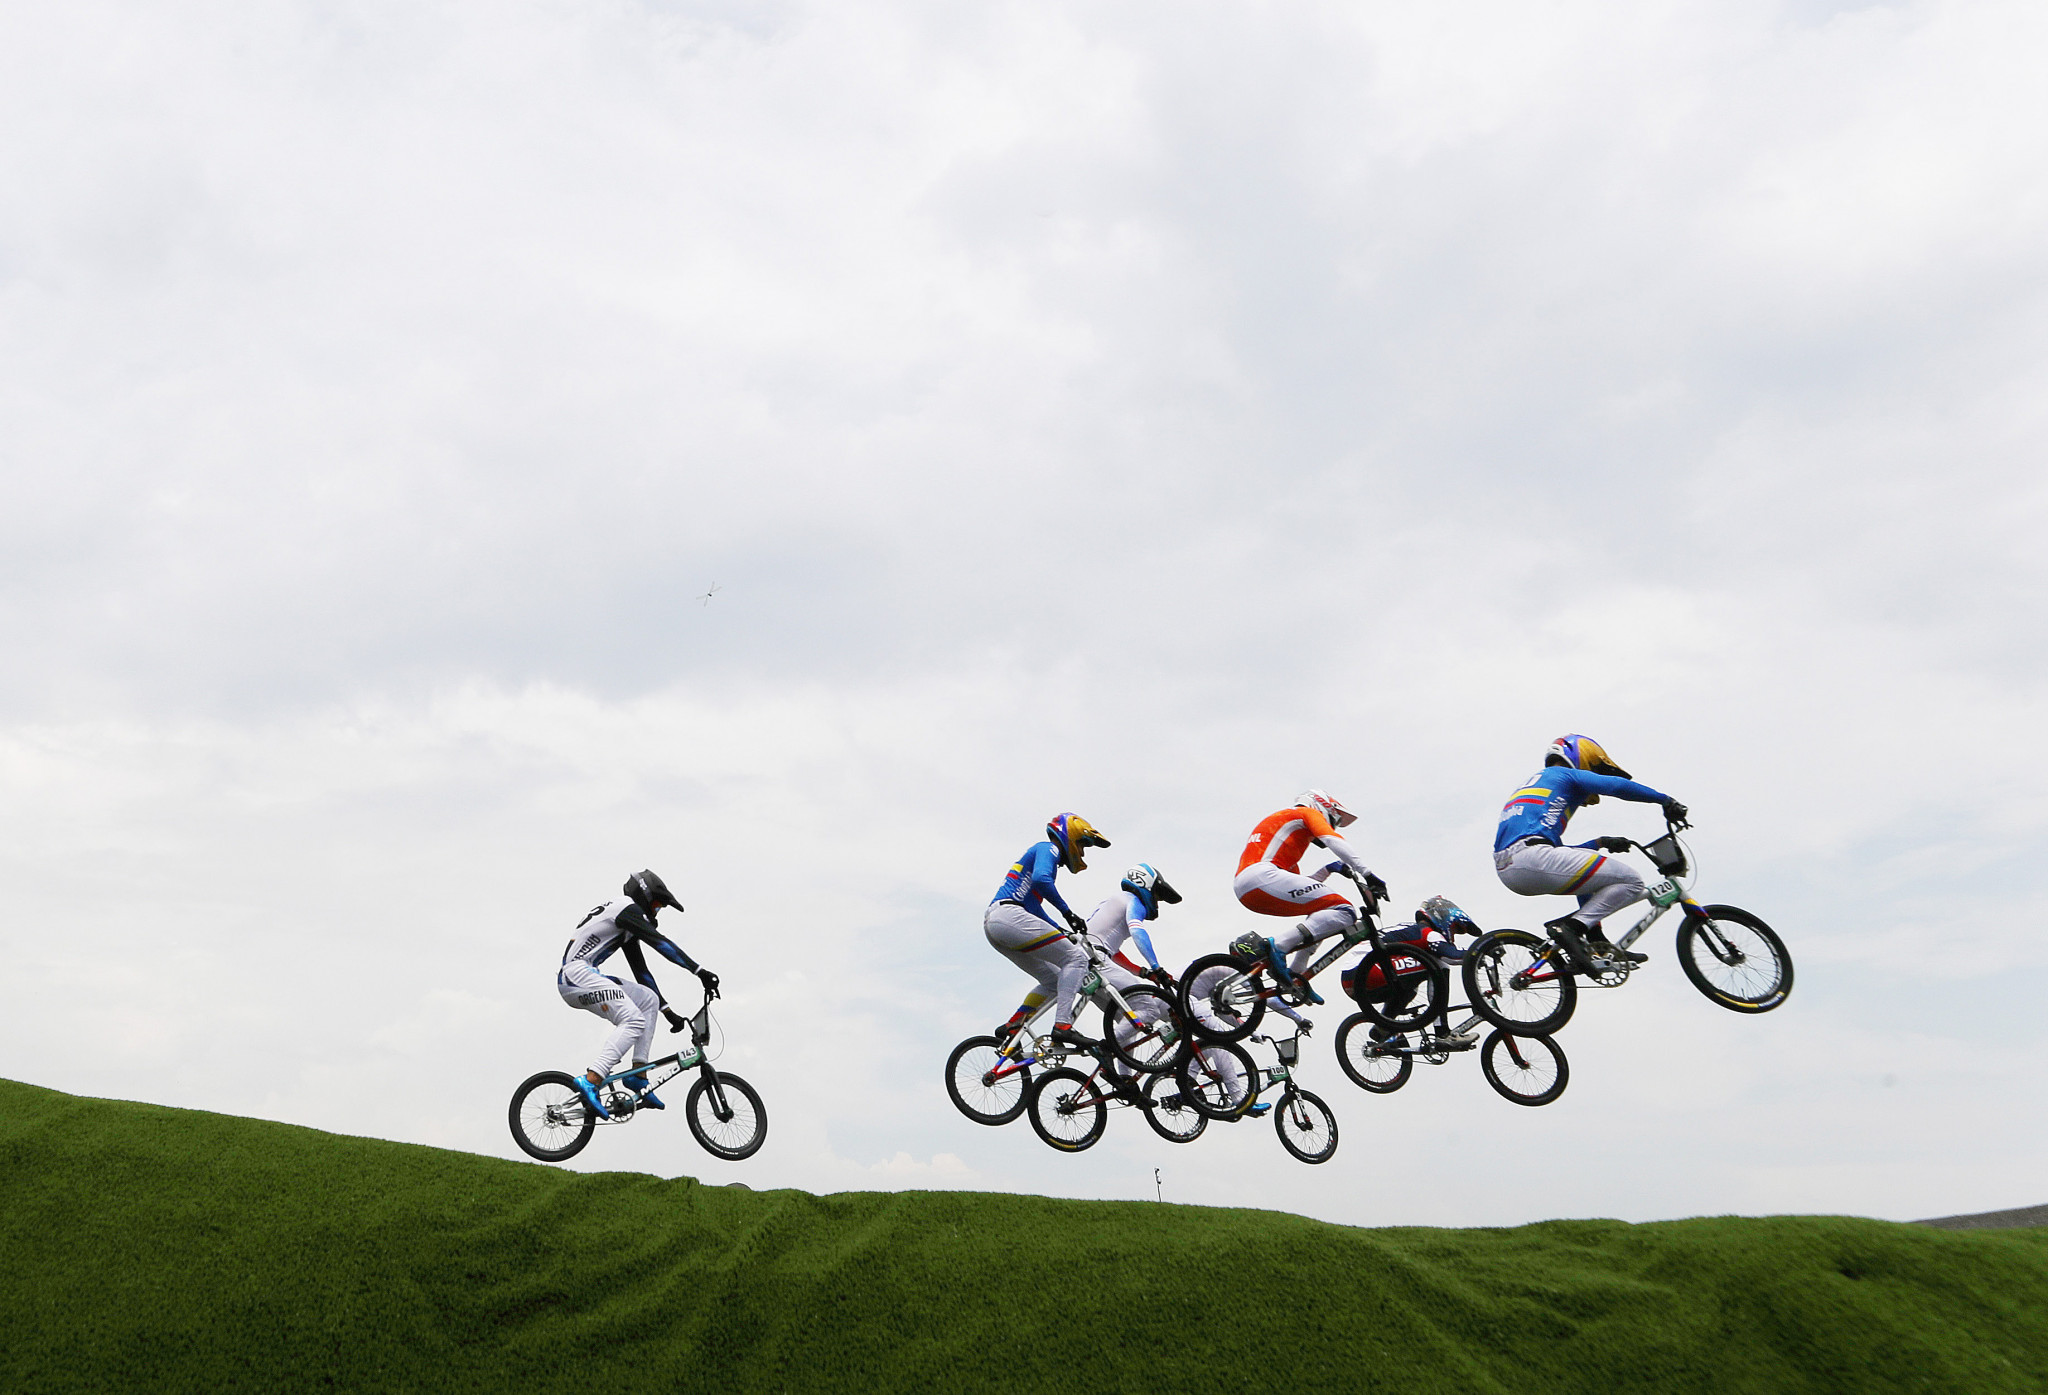 The men's and women's BMX titles were decided on the seventh day of competition in Tokyo ©Getty Images